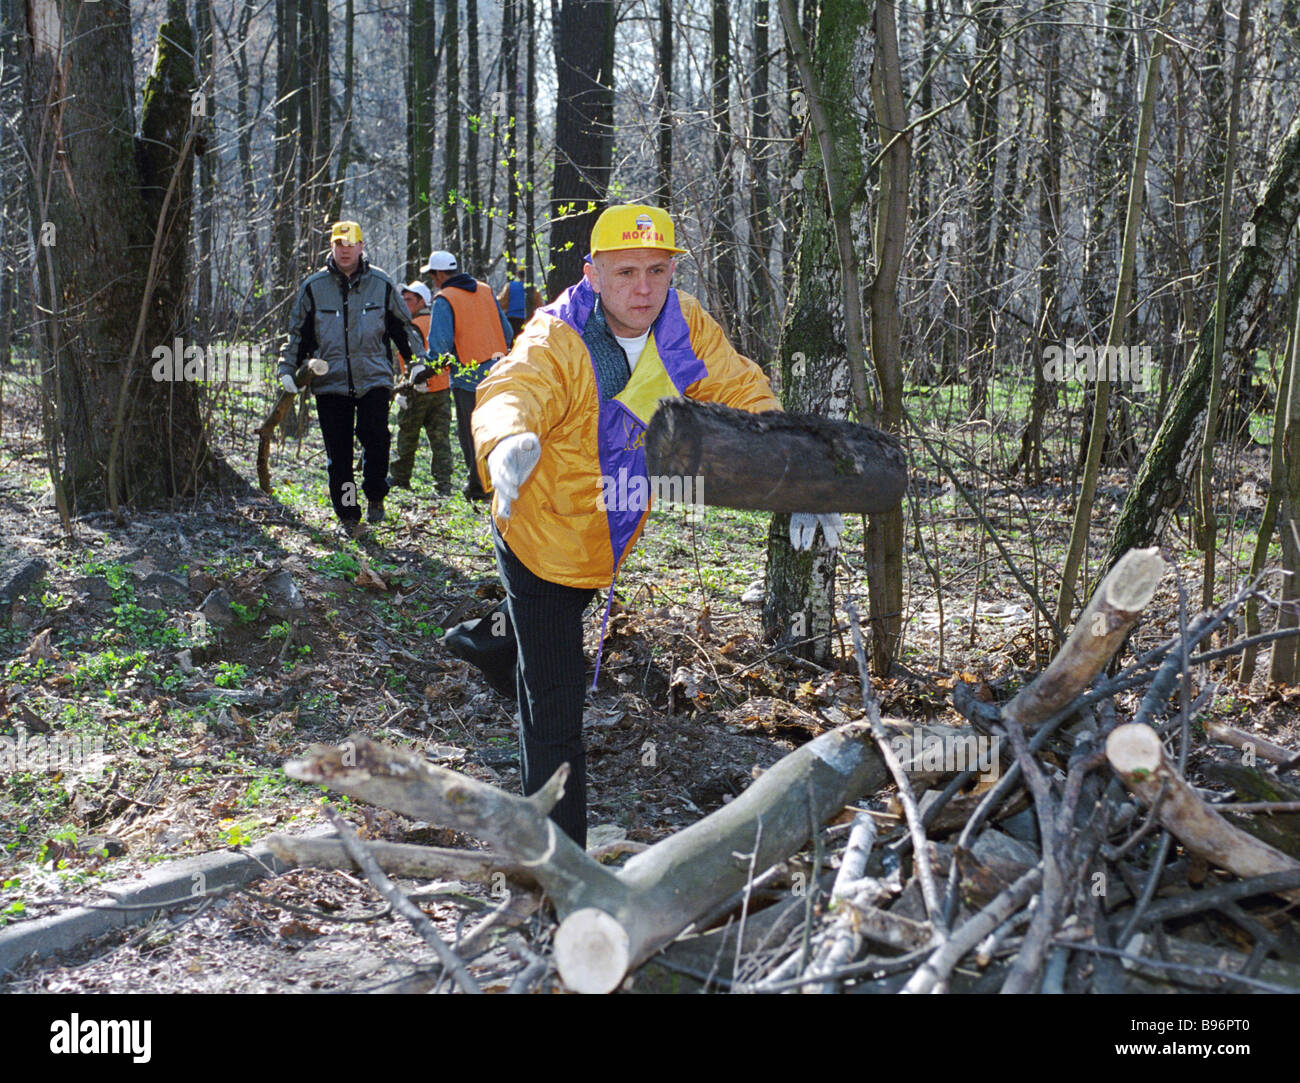 Participants in volunteer weekend work organized by the United Russia Party - Stock Image